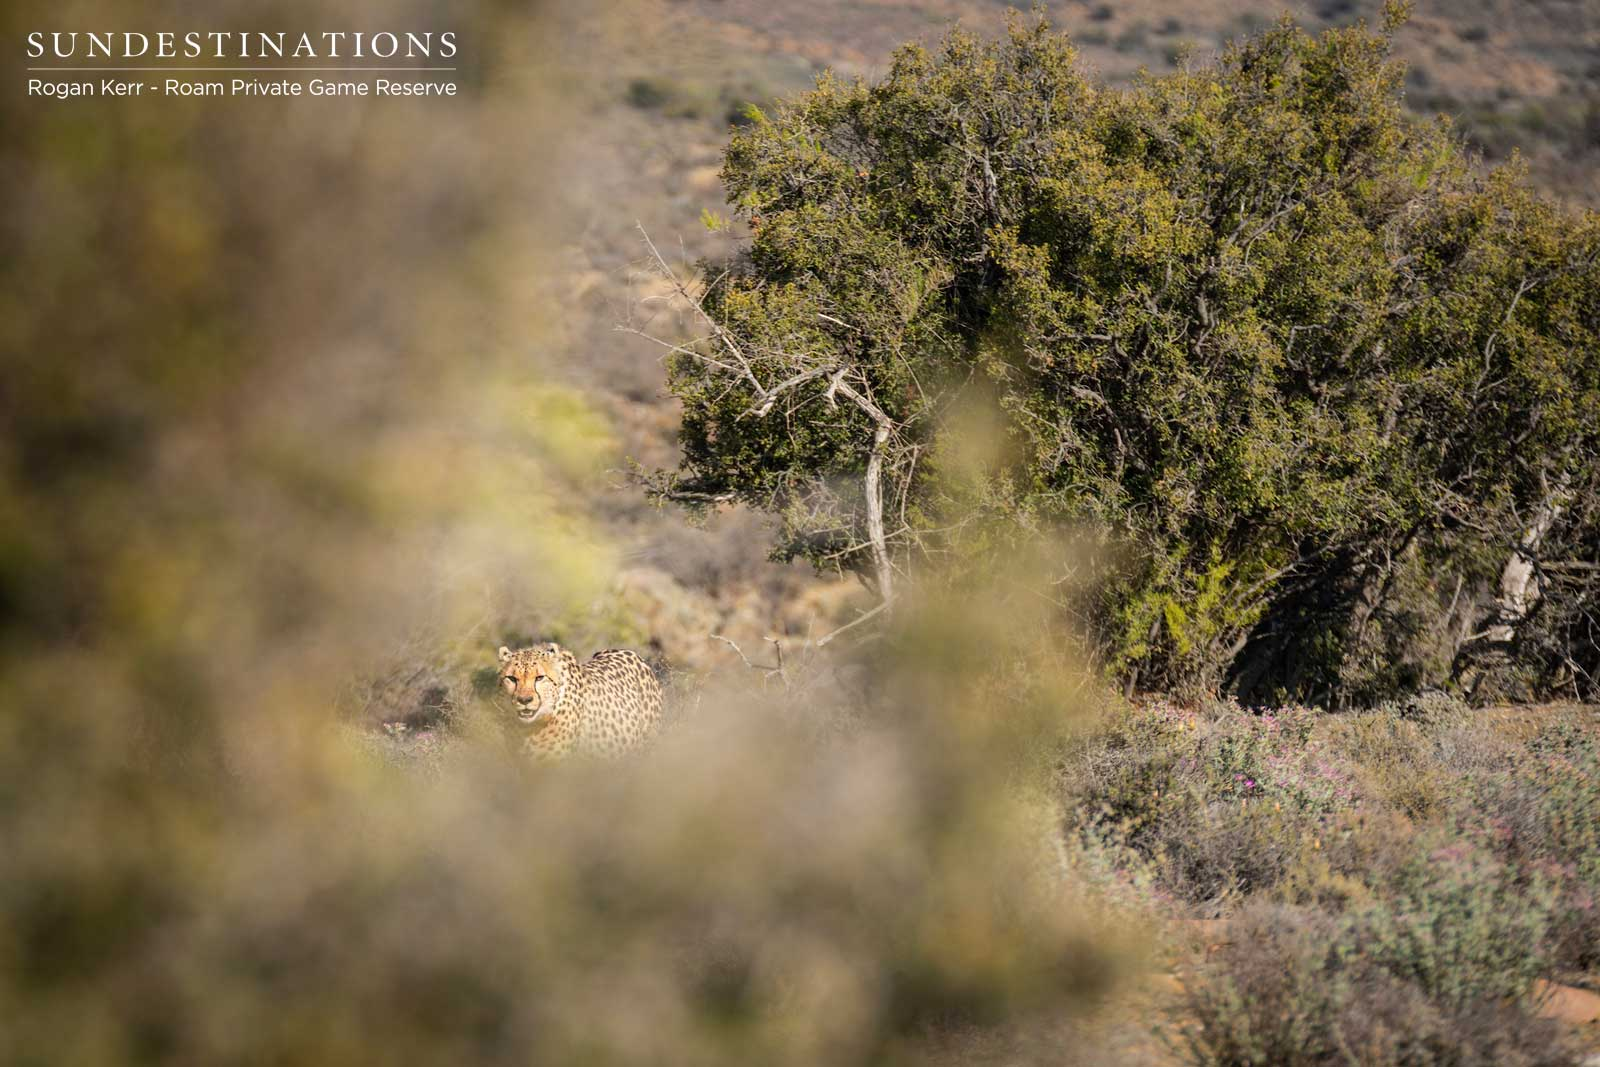 Cheetah in Roam Private Game Reserve